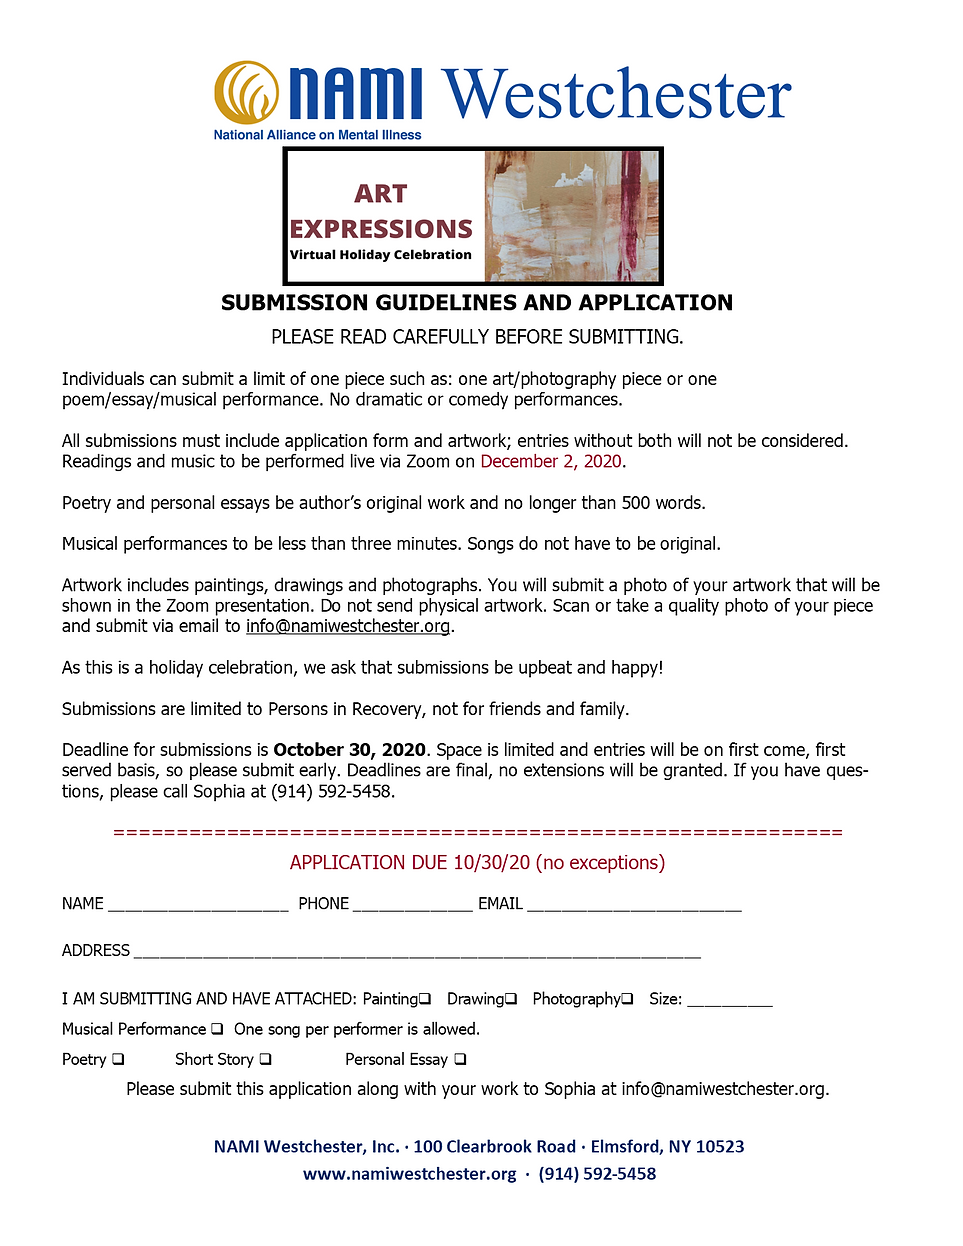 Art Expressions 2020 Application.png